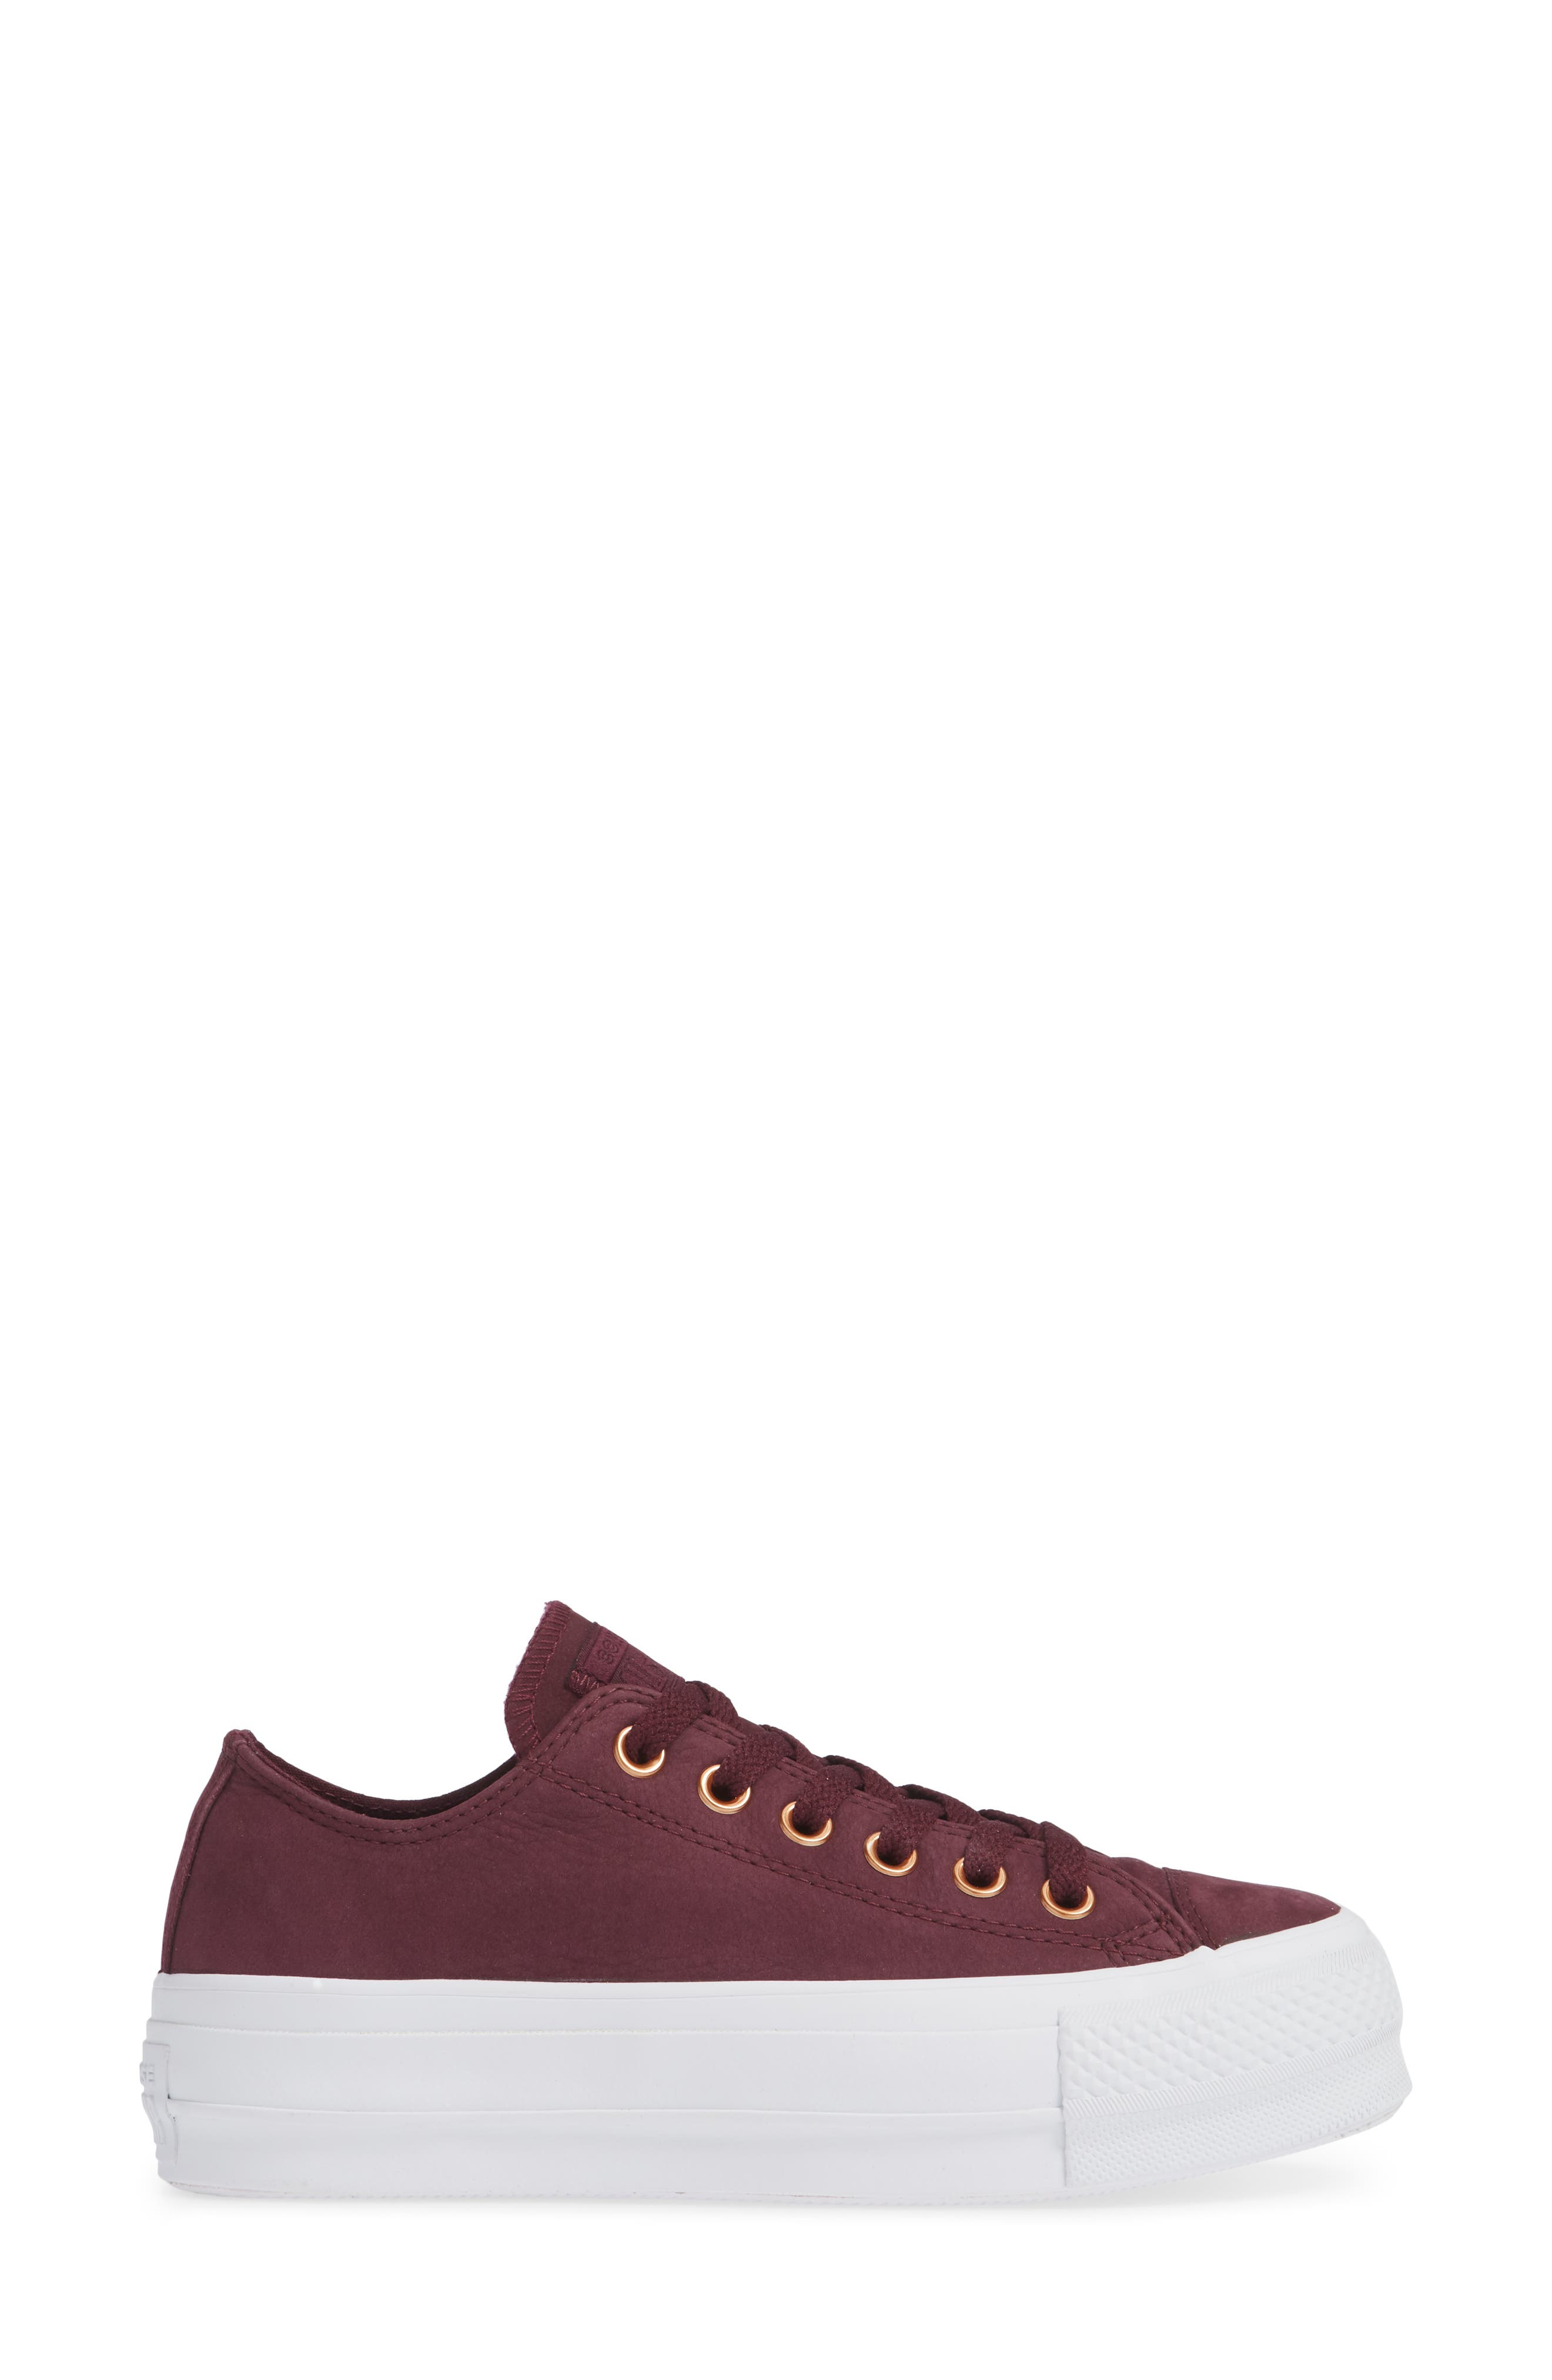 Chuck Taylor<sup>®</sup> All Star<sup>®</sup> Platform Sneaker,                             Alternate thumbnail 3, color,                             DARK SANGRIA NUBUCK